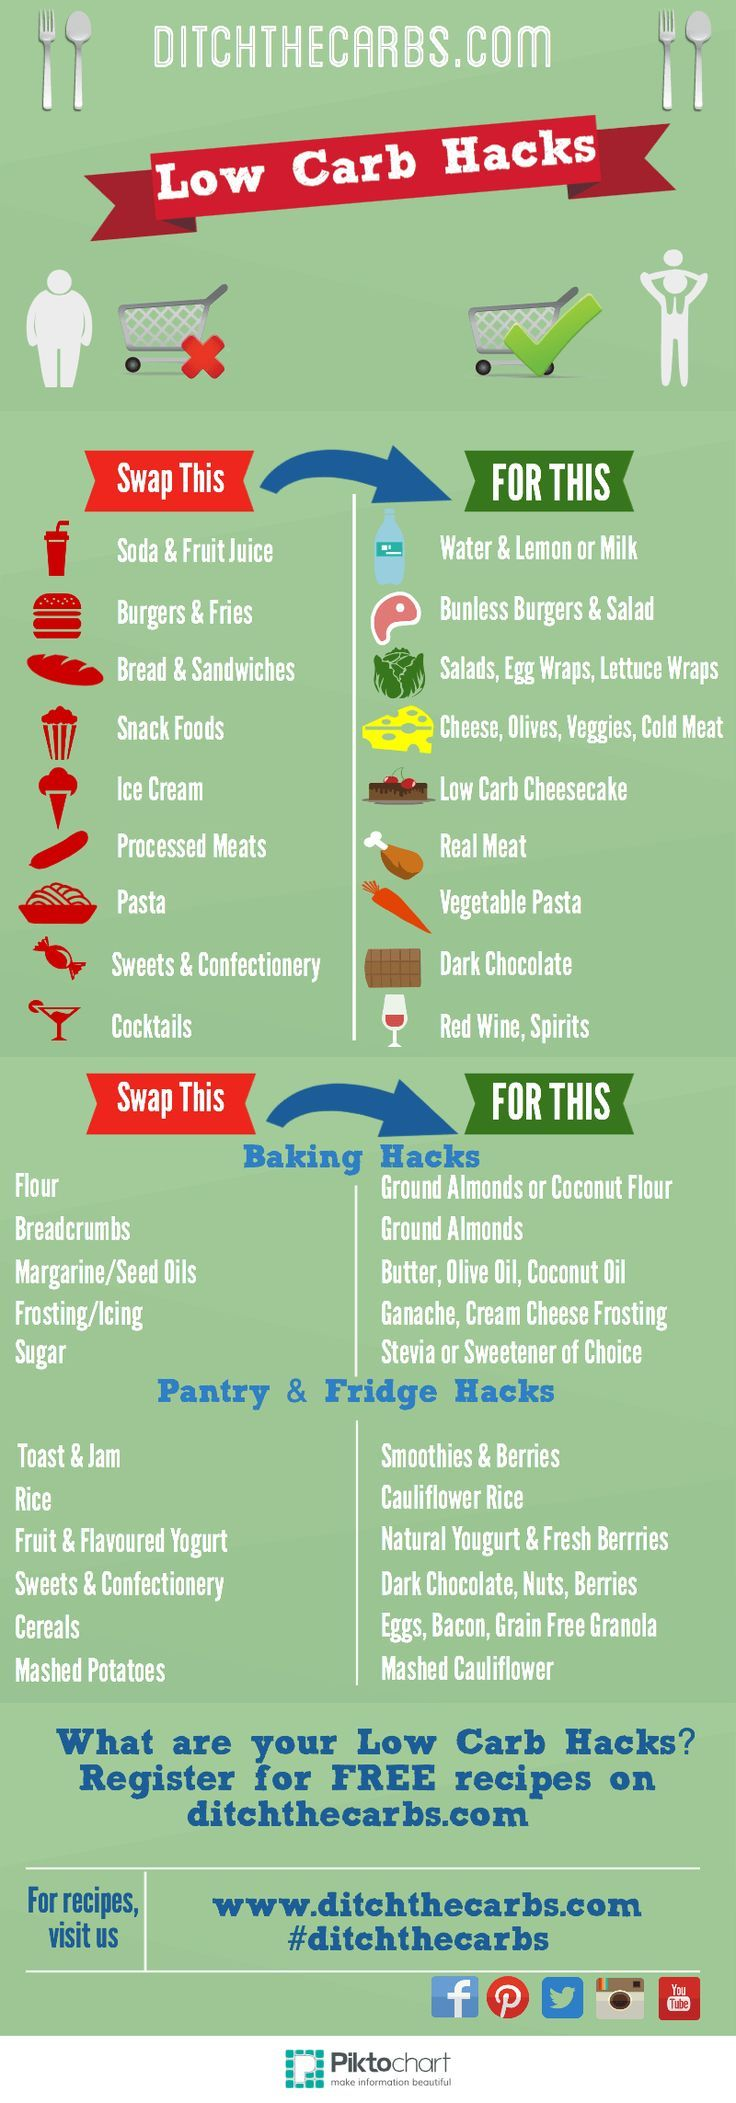 """What to eat if your diabetic Low Carb Hacks """"Comment: Milk for low carb? Not really... But most of the others look good! Also, you can make homemade low carb ice cream. ;)"""" Low Carb Hacks 